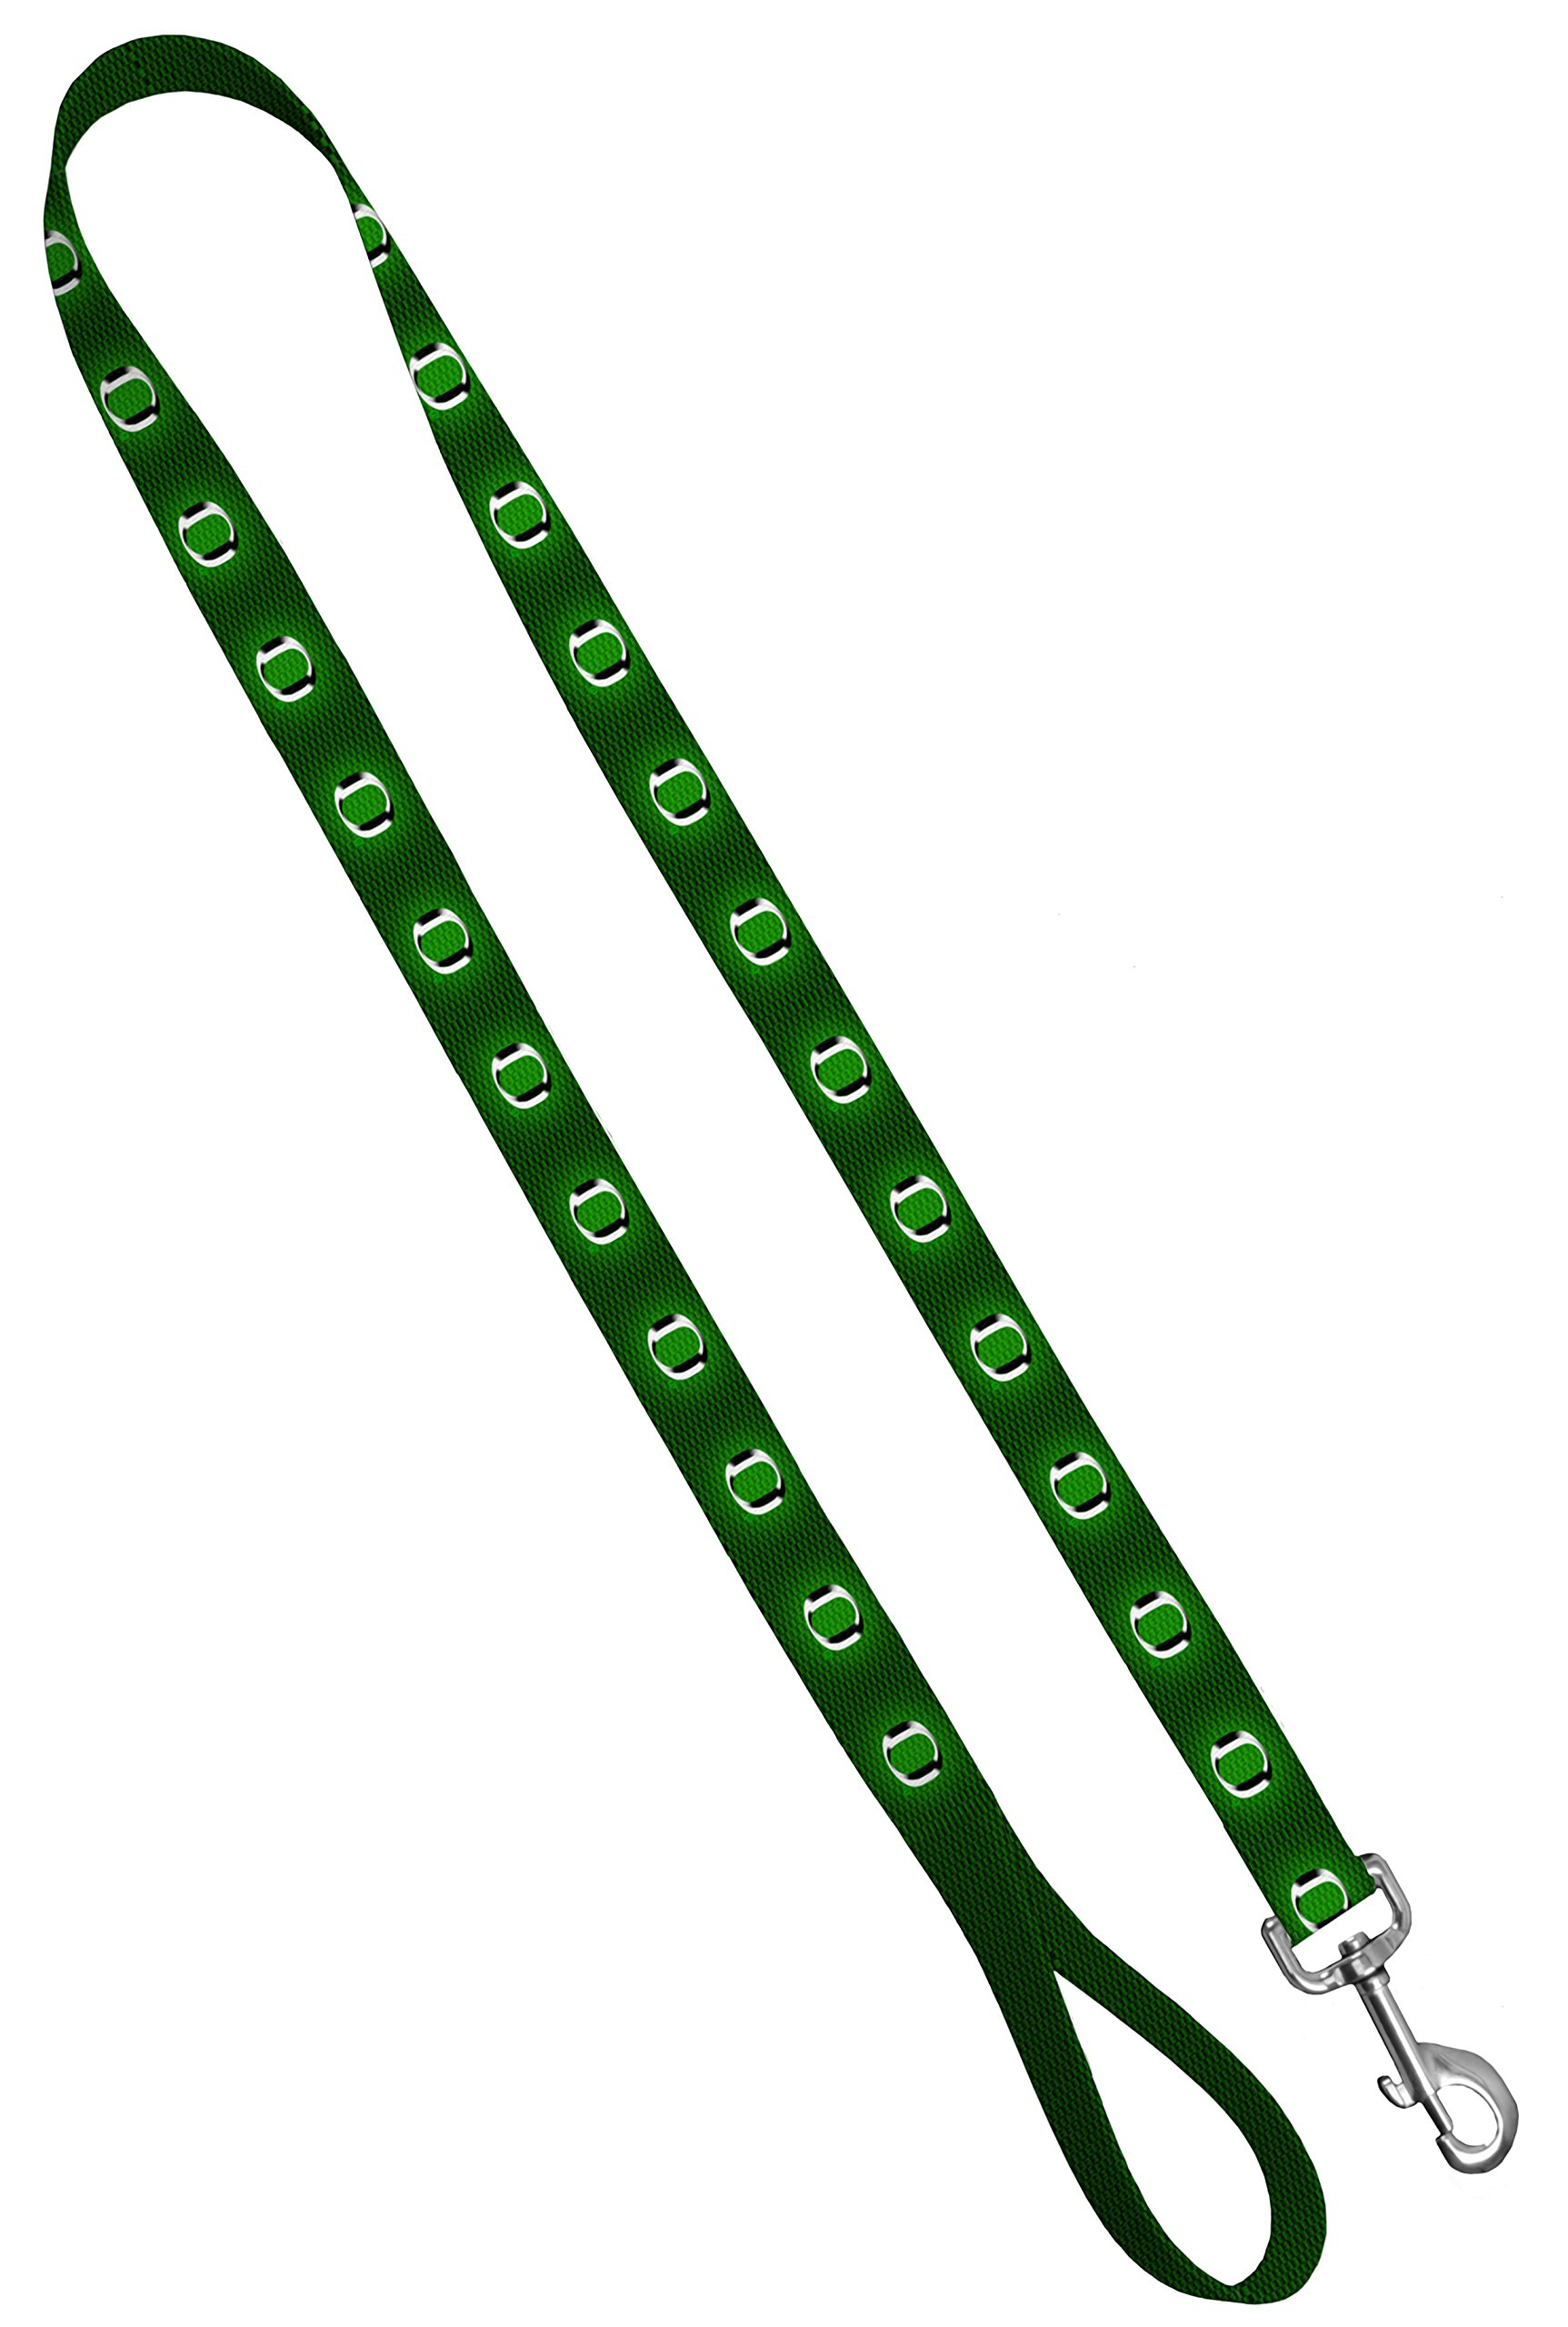 Moose Pet Wear Dog Leash - University of Oregon Ducks Pet Leash, Made in The USA - 3/4 Inch Wide x 4 Feet Long, Green Carbon Fiber Chrome O